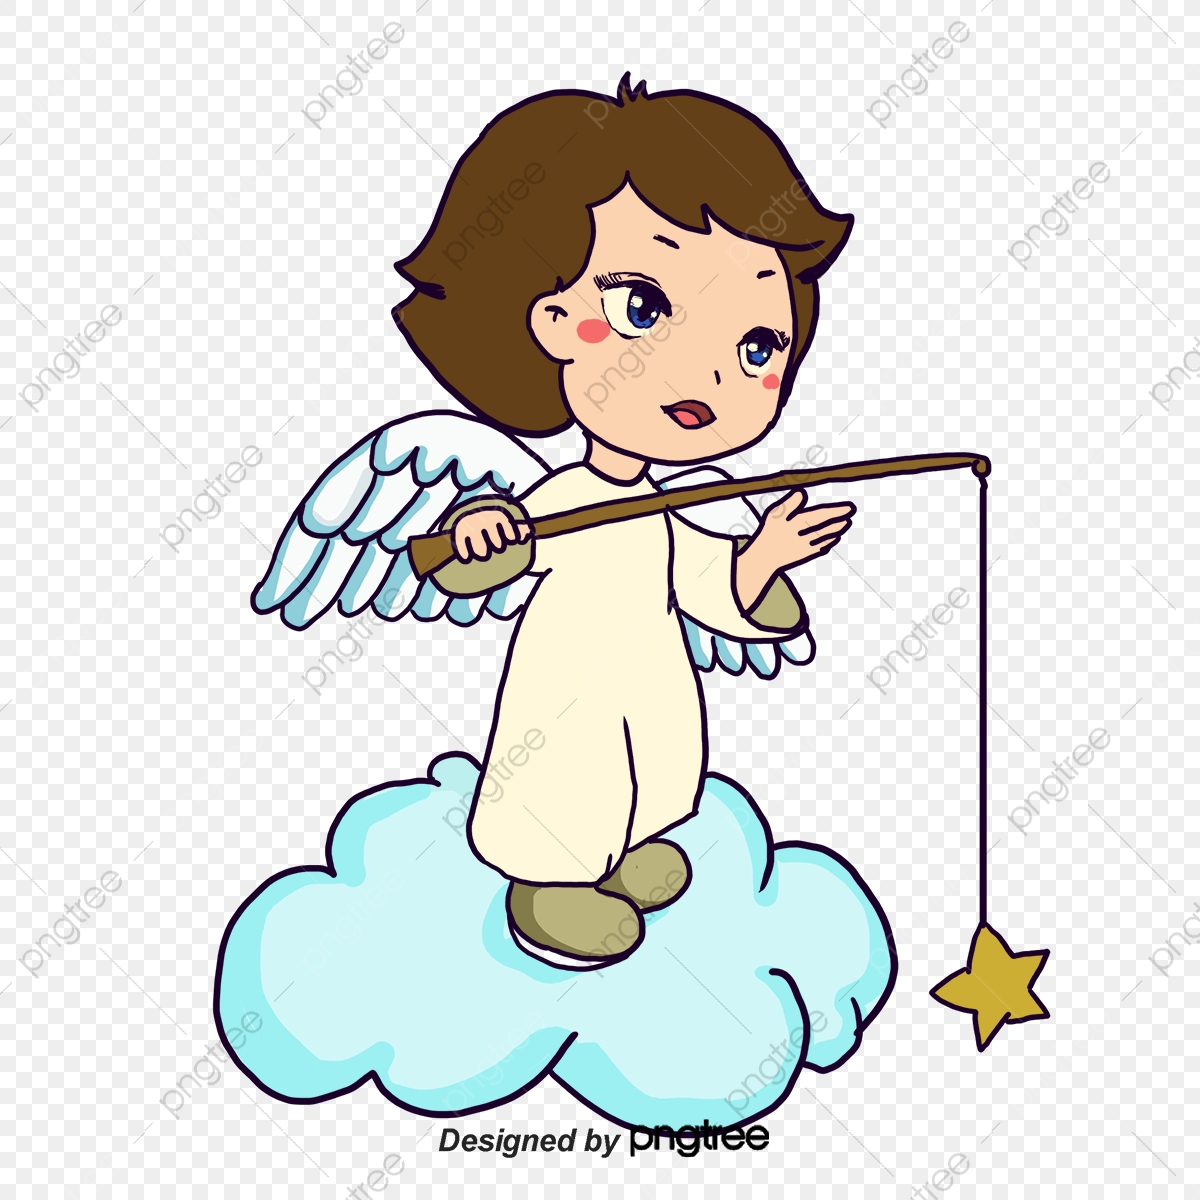 hight resolution of commercial use resource upgrade to premium plan and get license authorization upgradenow angel boy angel clipart